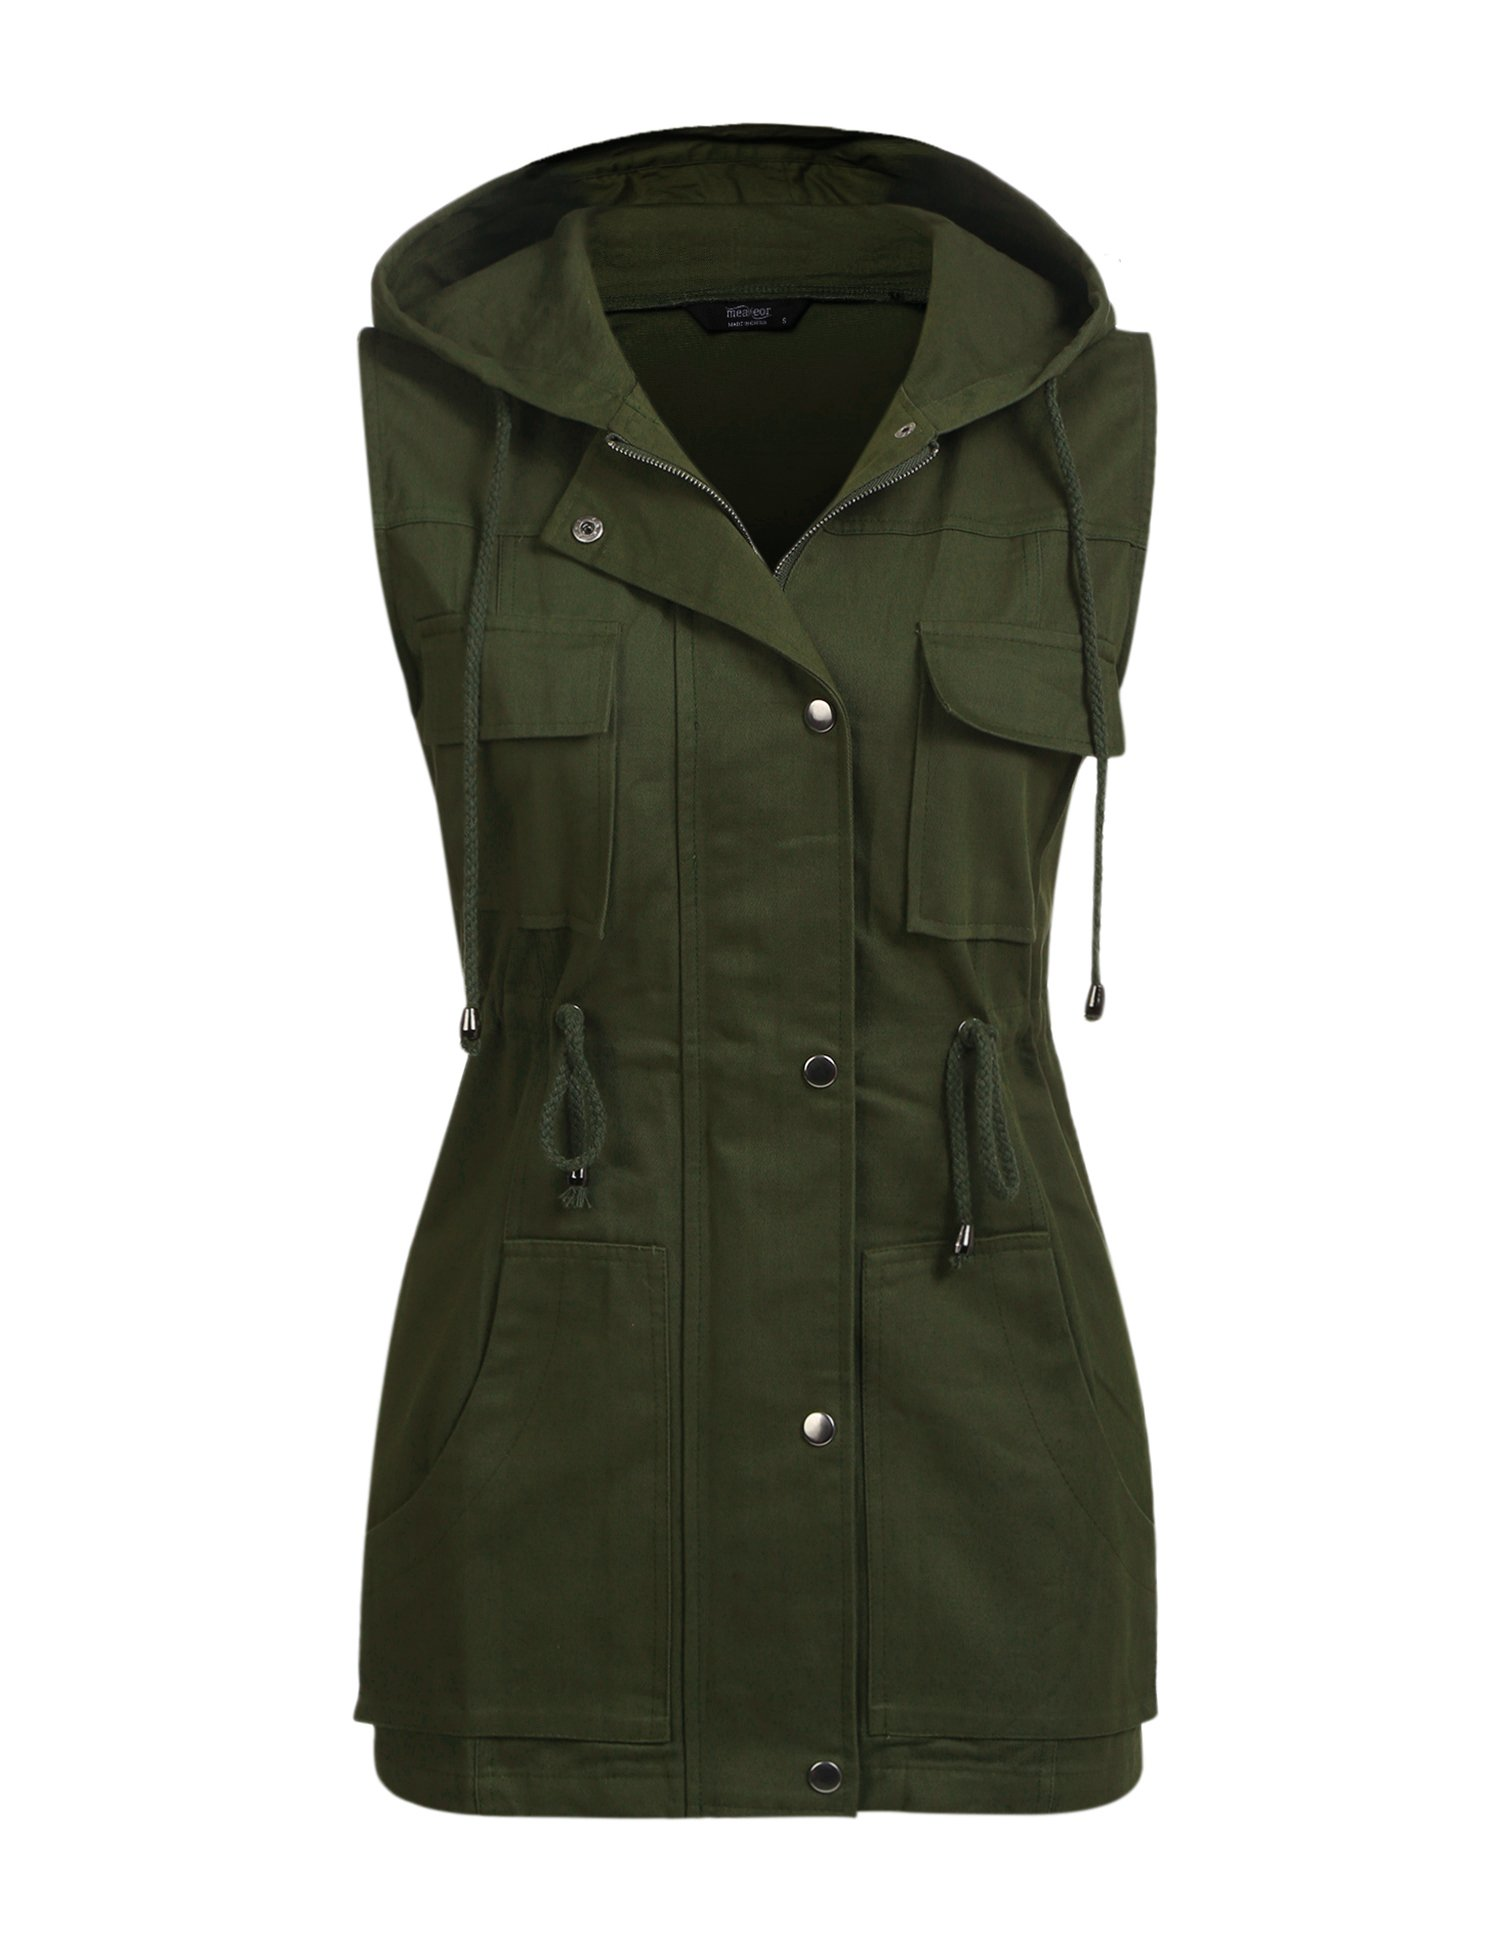 Beyove Utility Style Vest With Collar Front Zipper/Snap Closure Olive Green Small